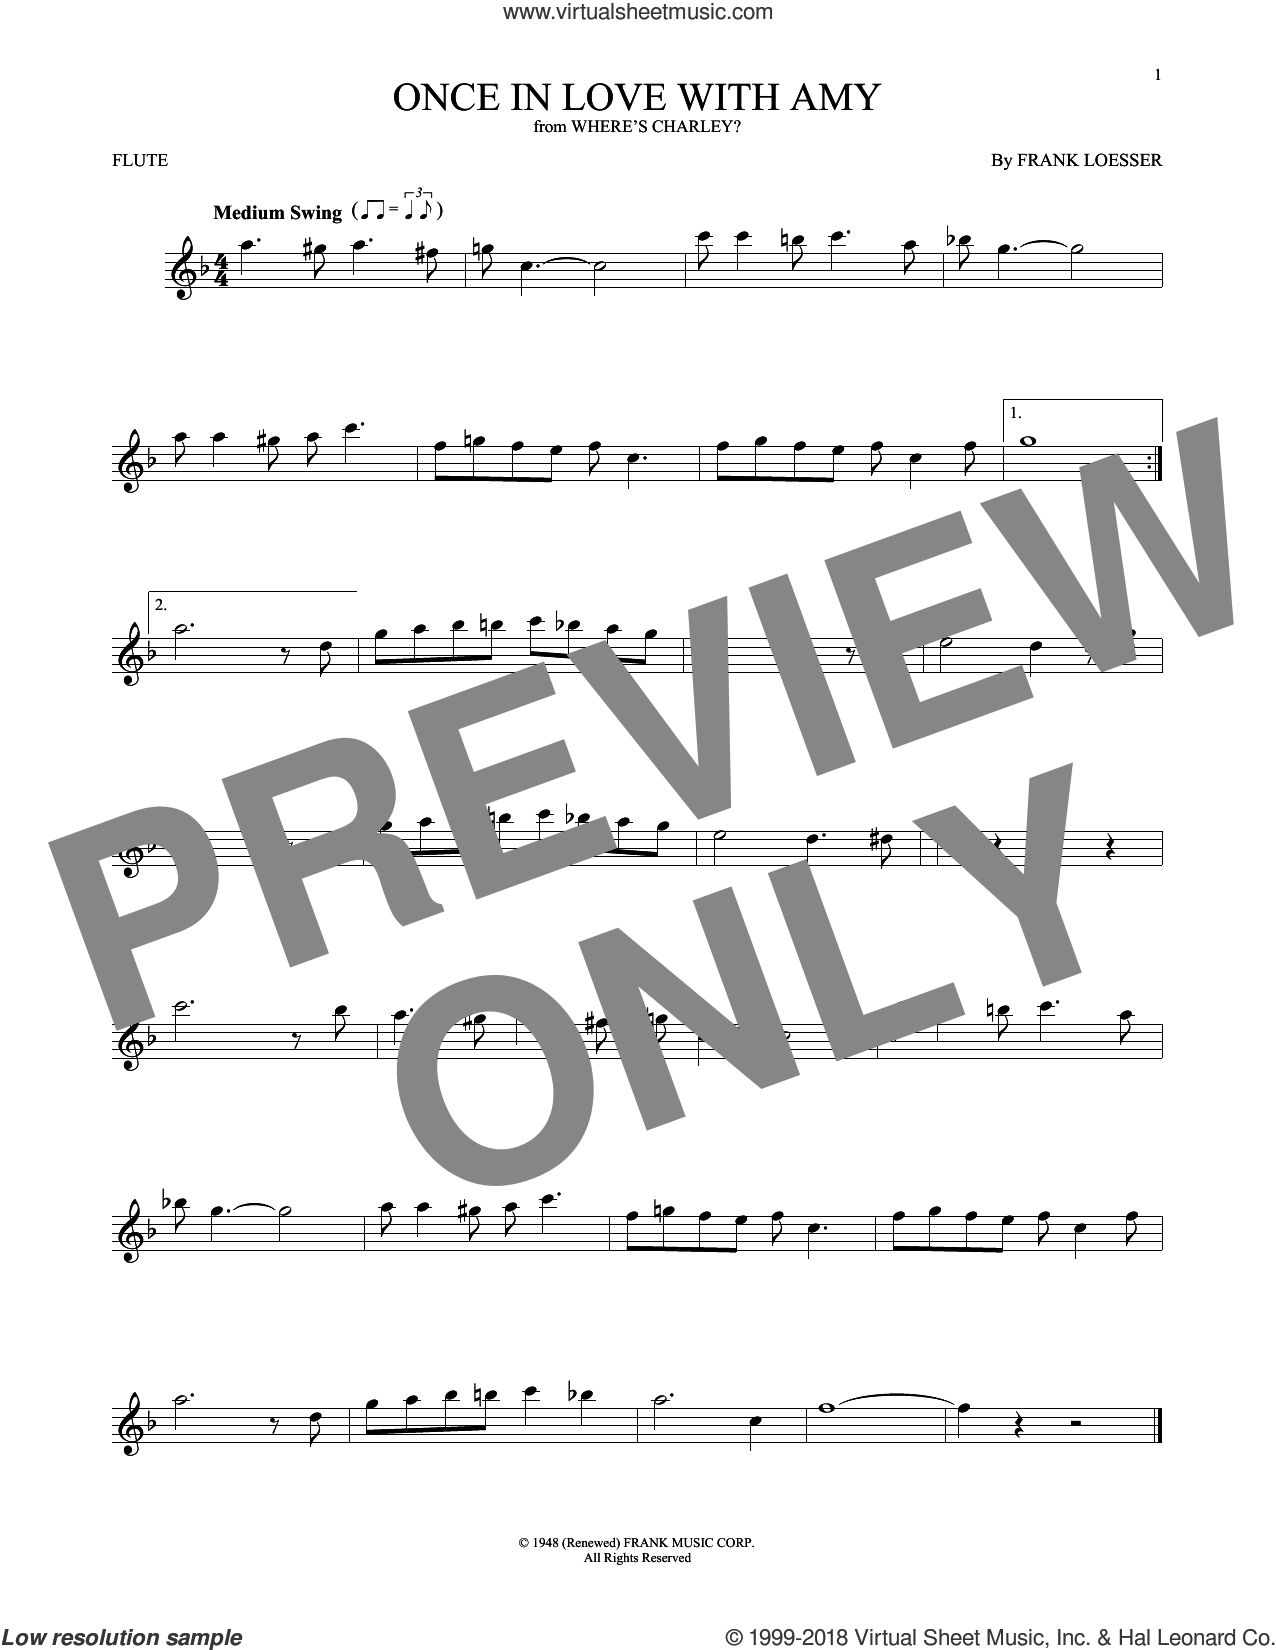 Once In Love With Amy sheet music for flute solo by Frank Loesser, intermediate skill level